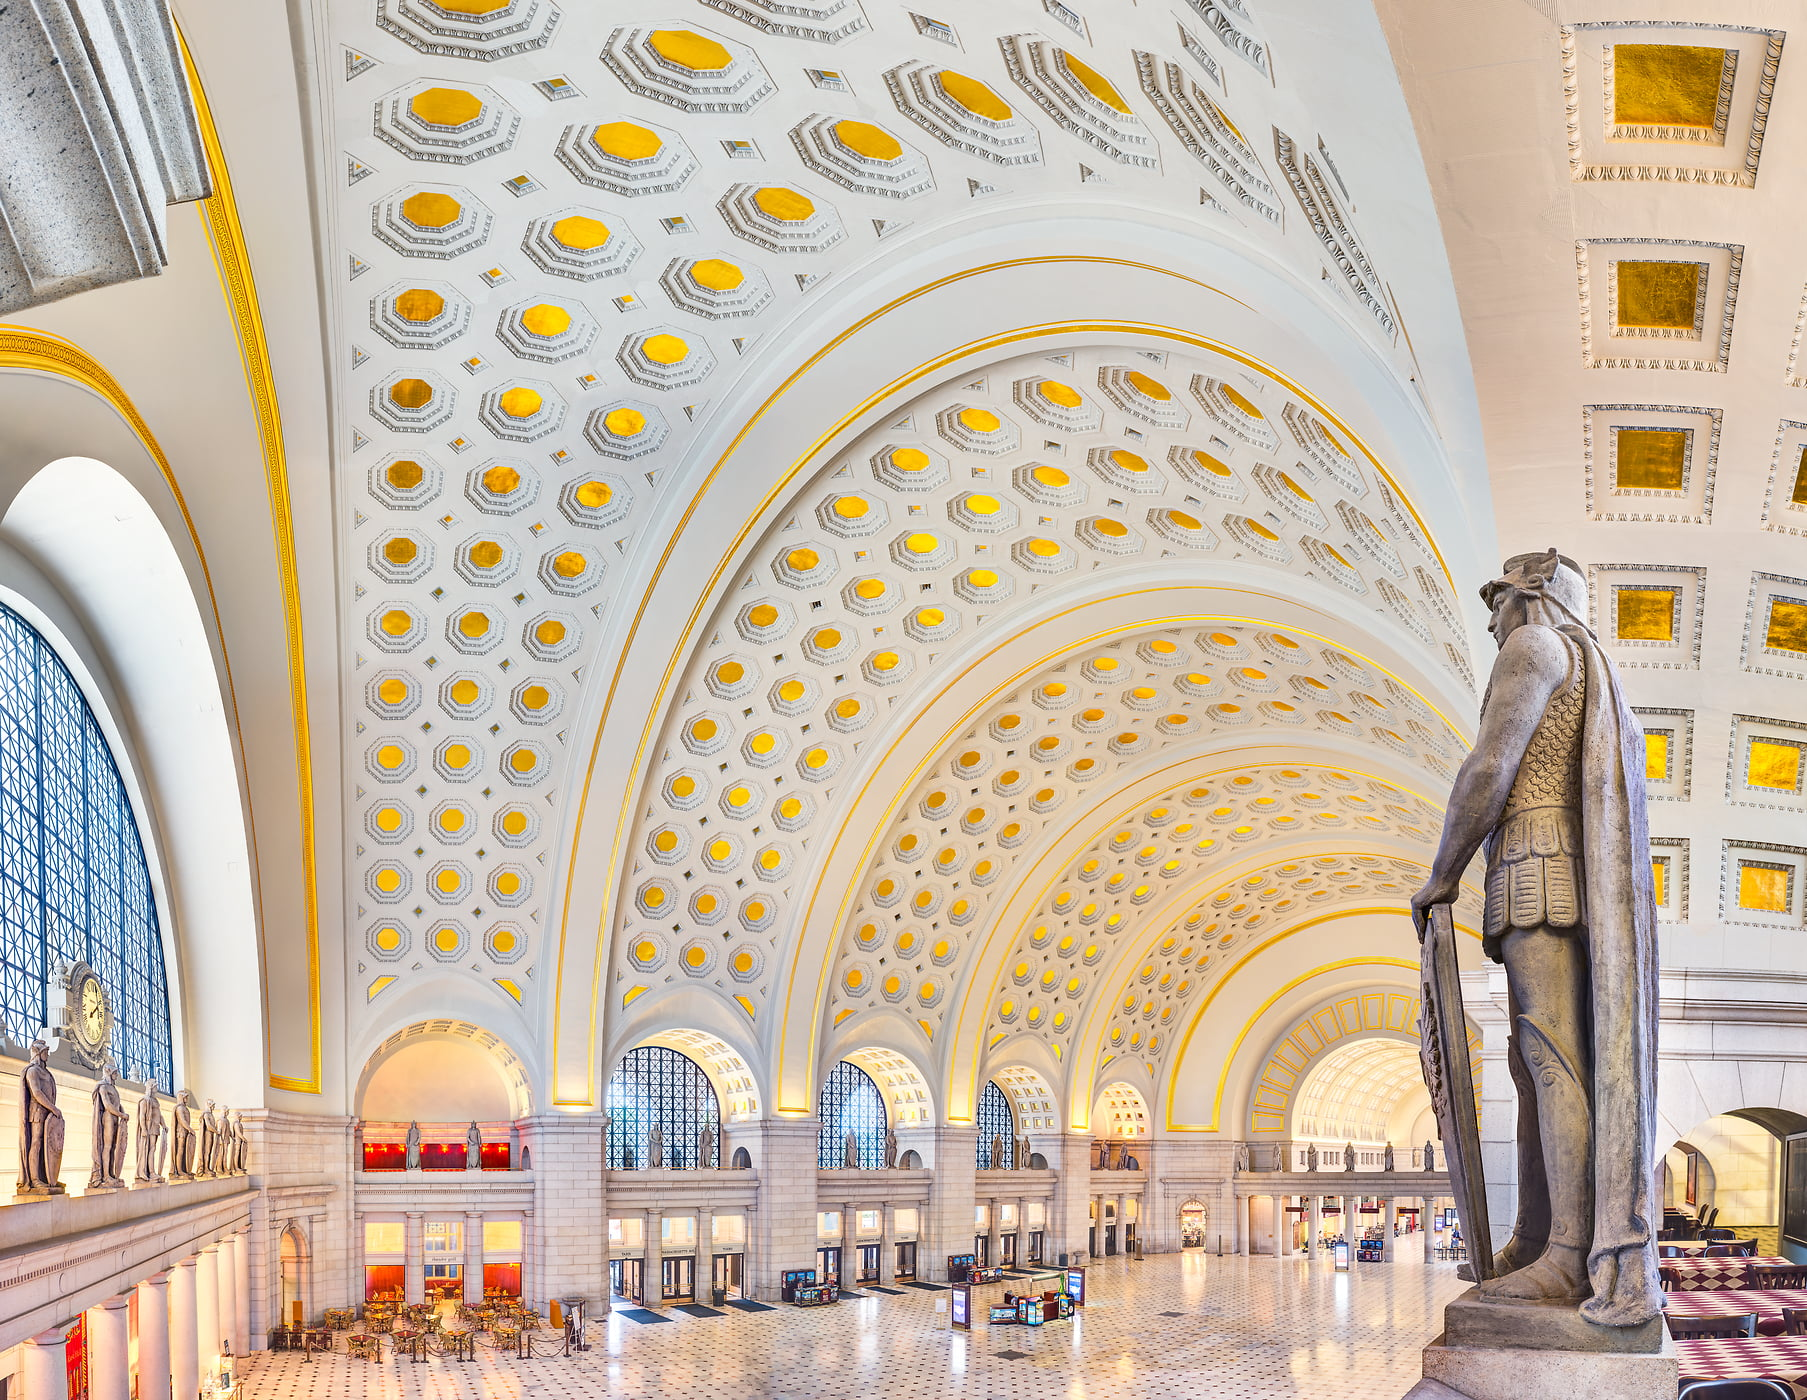 2,128 megapixels! A very high resolution, large-format VAST photo print of Washington DC architecture; interior photograph created by Tim Lo Monaco in Main Hall at Union Station, Washington, D.C.